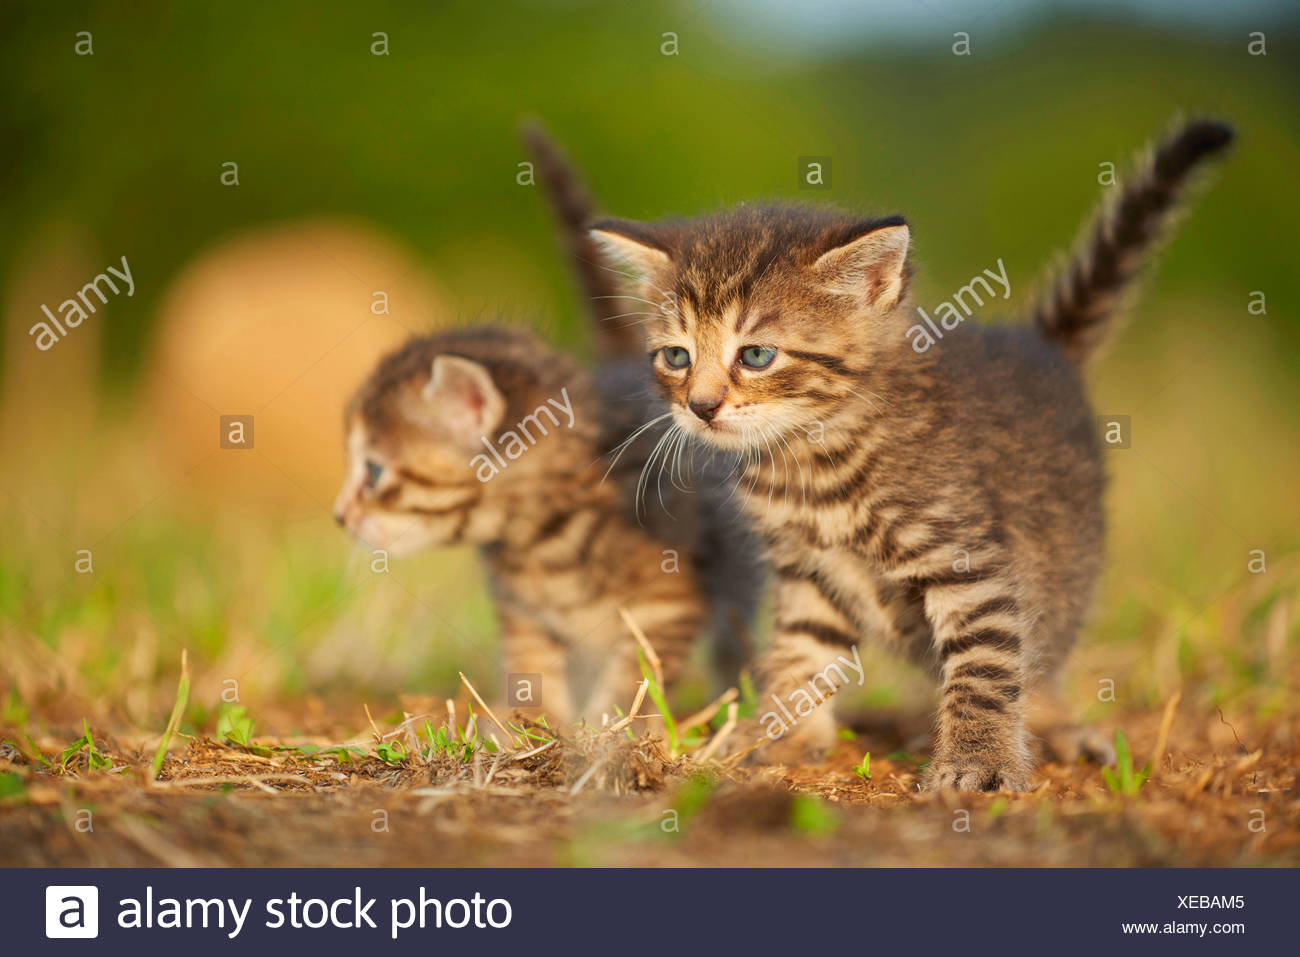 domestic cat, house cat (Felis silvestris f. catus), kitten with one sibling in a meadow, Germany Stock Photo